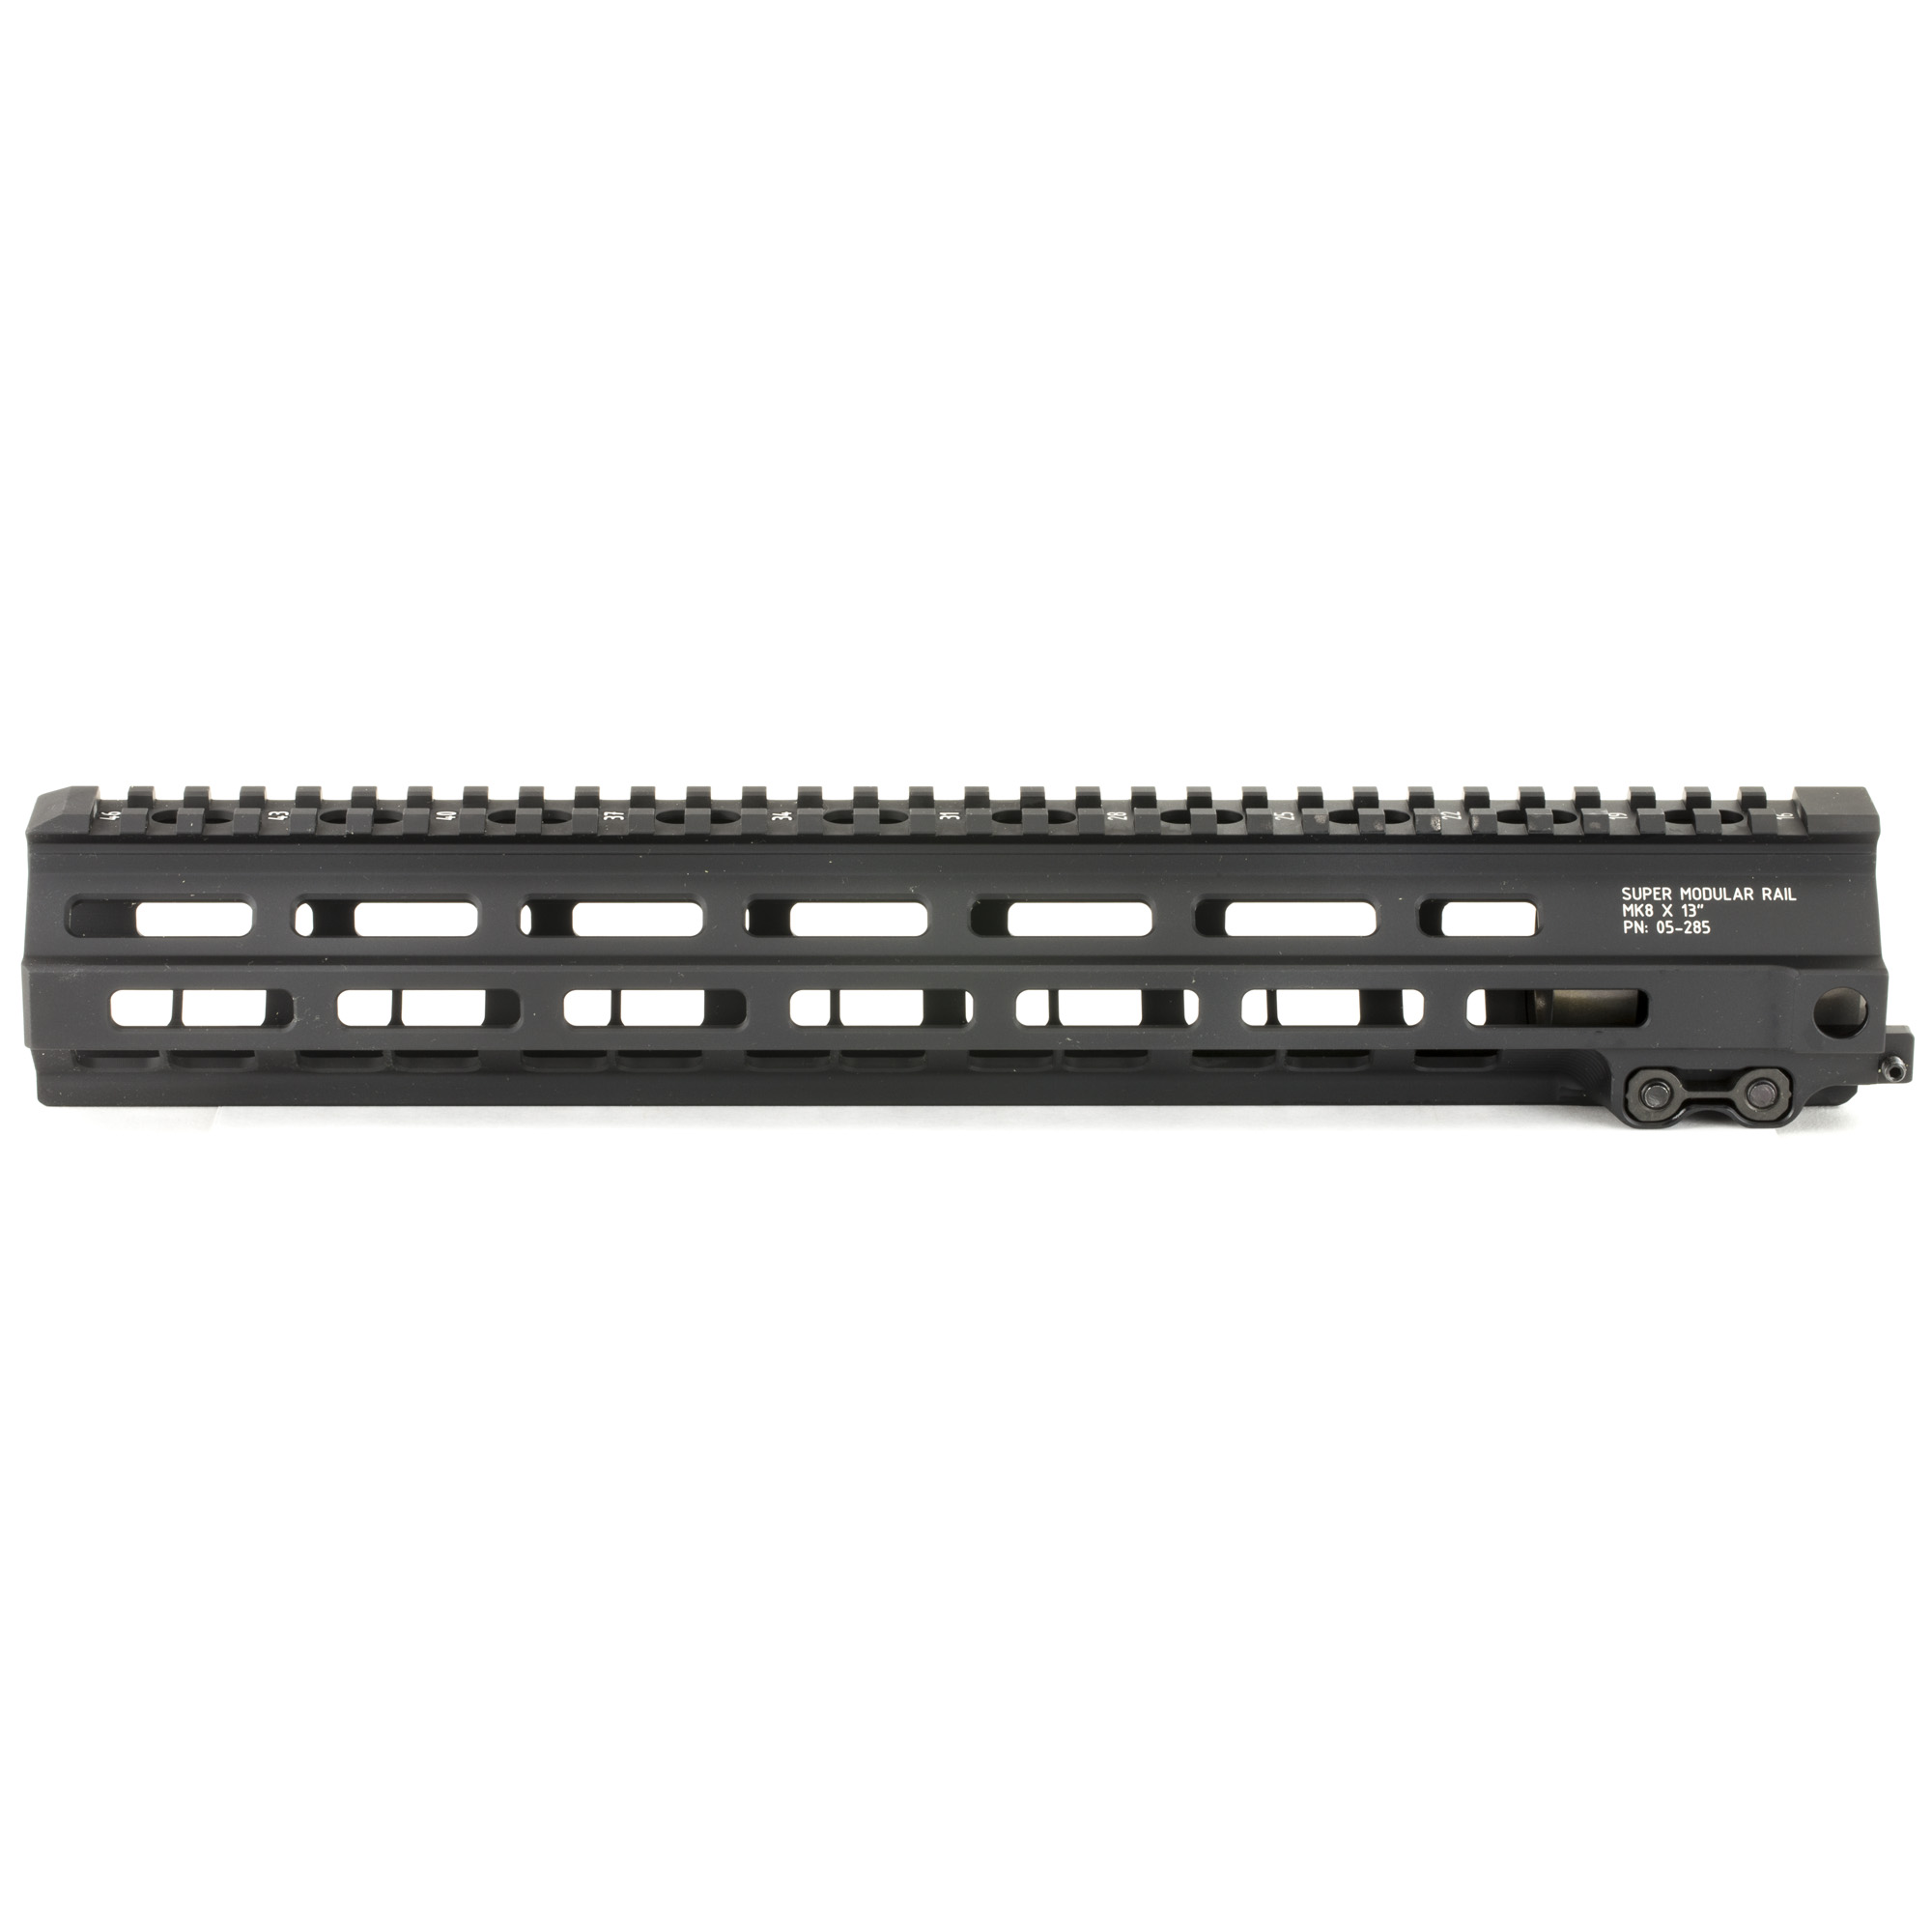 """The Super Modular 13"""" Rail (SMR) MK8 M-LOK(TM) is Geissele's ultra-modular model. The SMR MK8 is one of the first rails available to utilize the Magpul M-LOK technology. These rails are designed to give the user full modularity while maintaining a strong and rigid platform. Maximum venting at the lower 45 degree quadrants create maximum heat dissipation and also dramatically reduces the rail's overall weight. Utilizing Magpul's M-LOK technology at the 3"""" 6"""" and 9 o'clock positions"""" as well as the upper 45 degree quadrants. The SMR MK8 is both versatile and modular"""" allowing the user to tailor their platform to his or her unique needs. The SMR MK8 also features Geissele's proprietary 2.25"""" long barrel nut. This increases the surface contact where the rail interfaces with the receiver and creates a platform that can be trusted to be straight and true the entire length of the free float rail. This increases accuracy and zero repeatability during disassembly and reassembly when performing maintenance."""